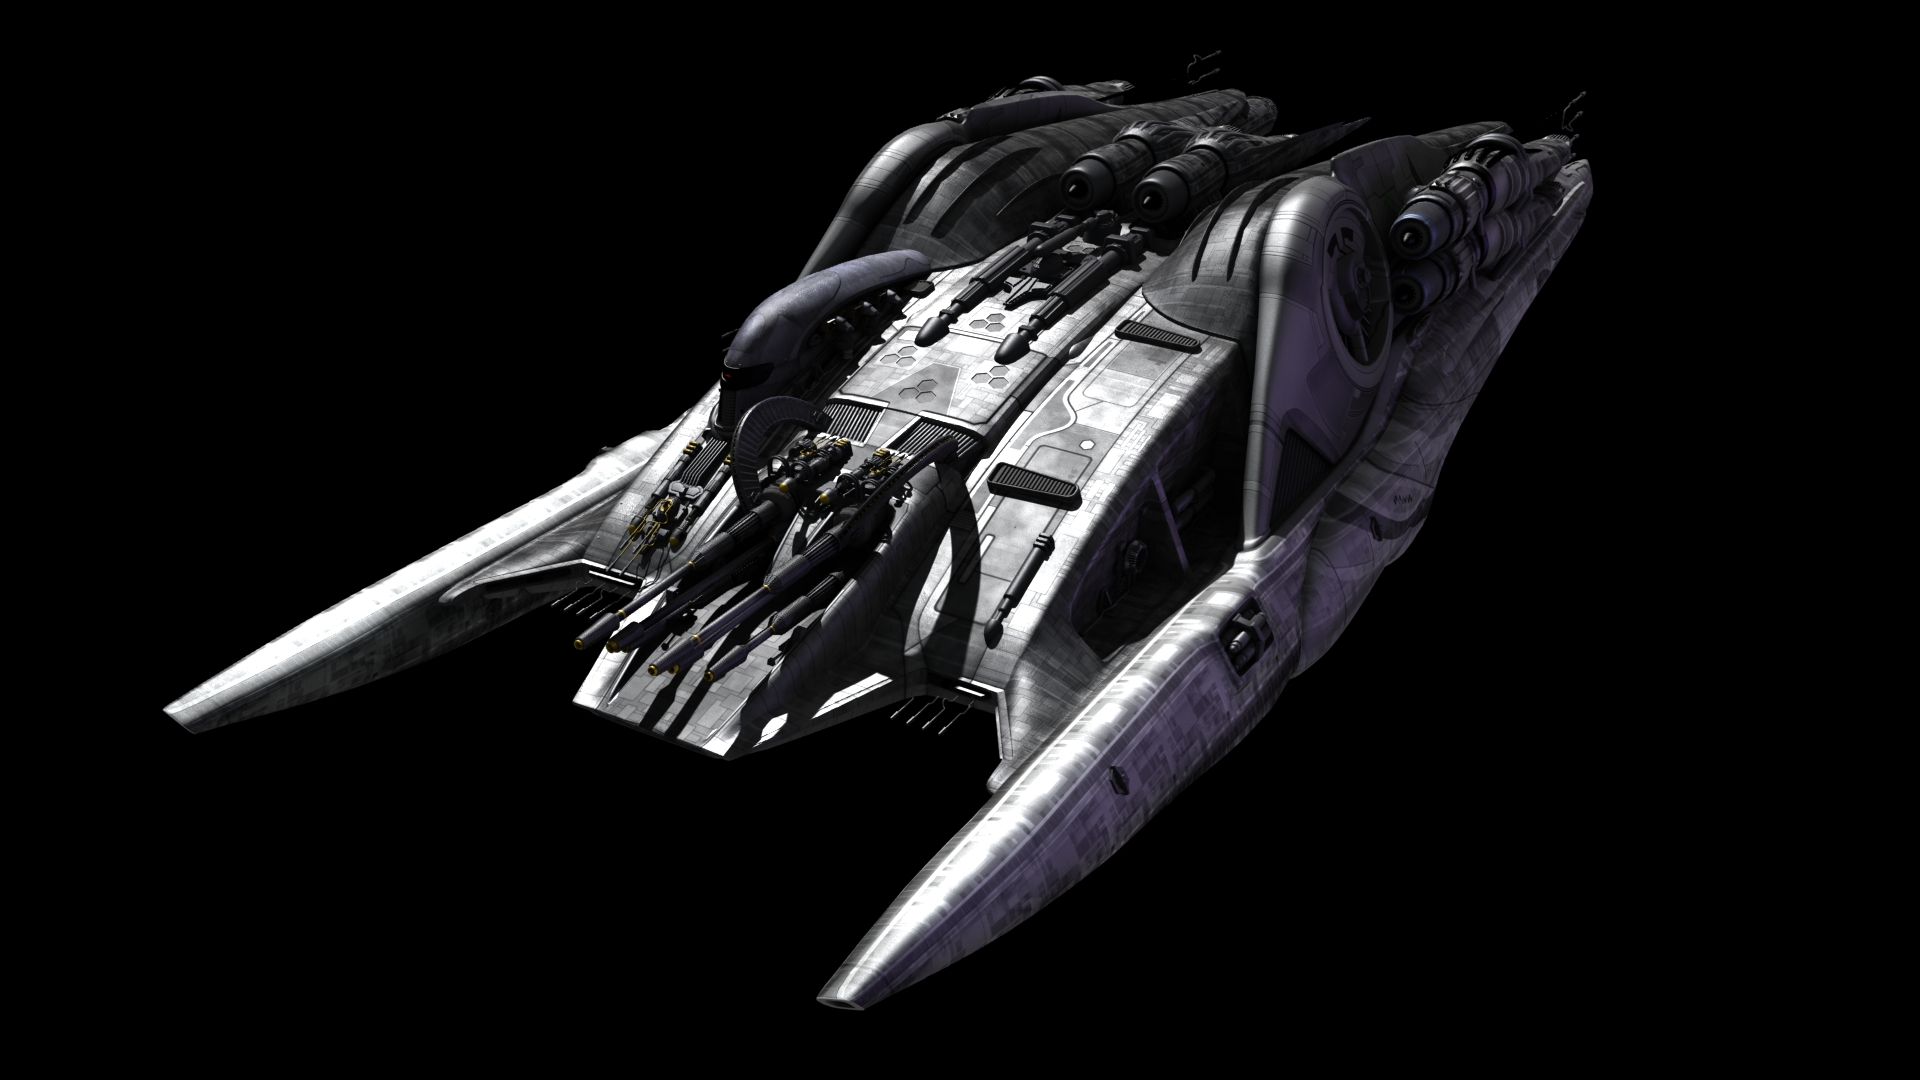 battlestar galactica spaceships science HD Wallpaper